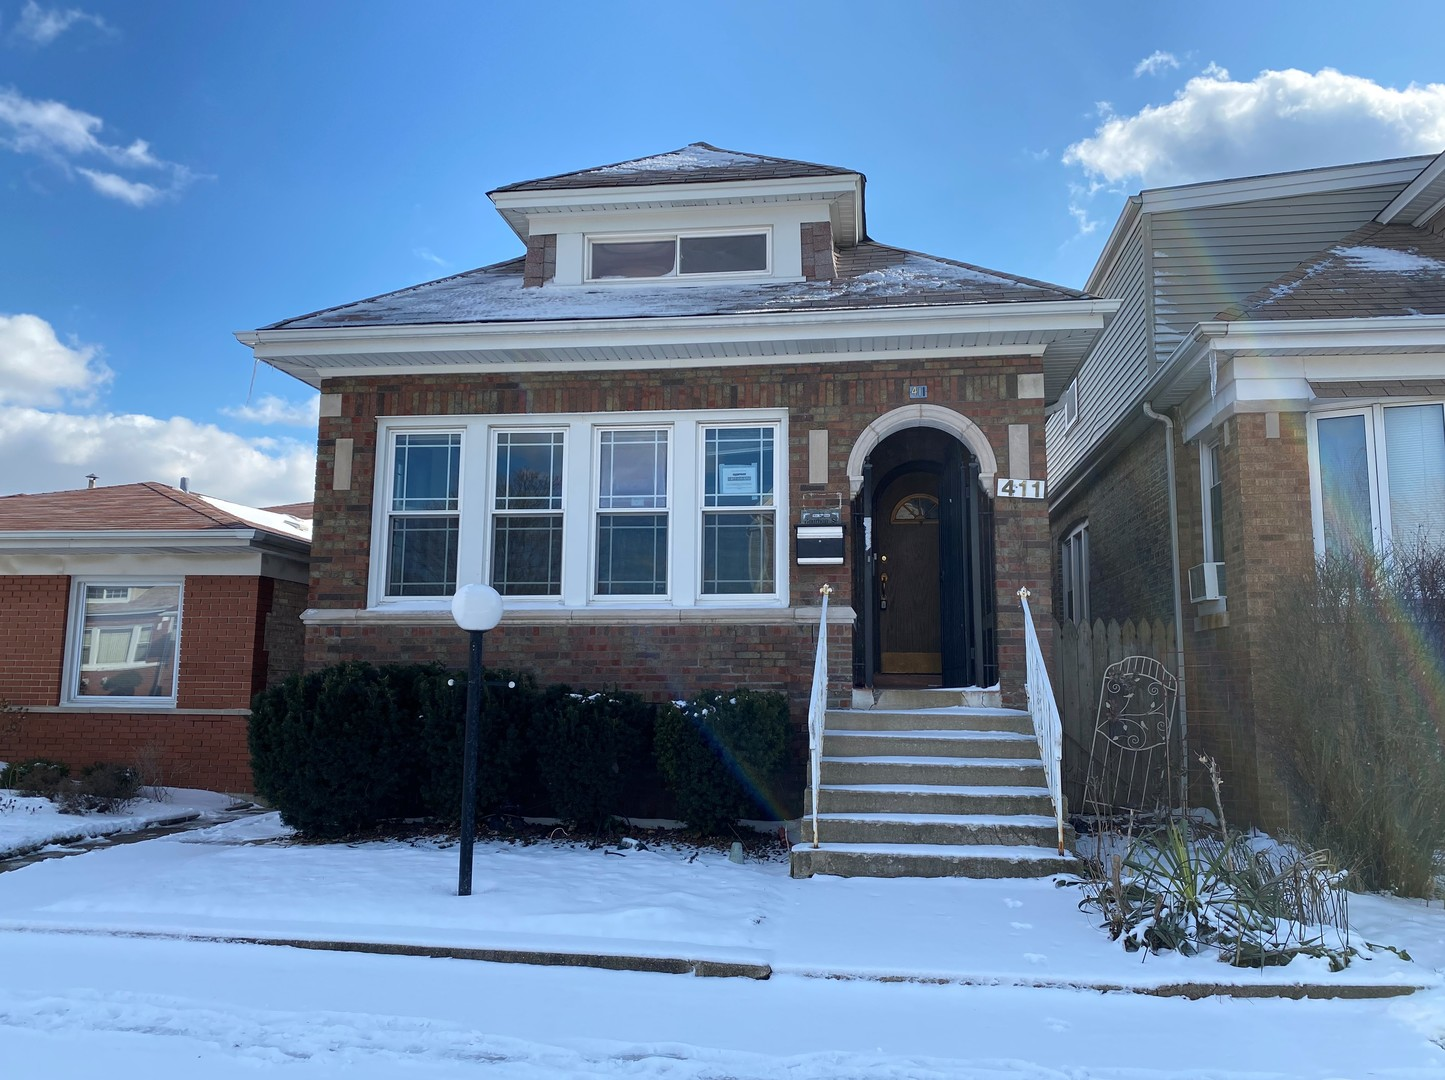 Investors special!  Great opportunity to make this  4 bedroom 2 bathroom  all brick bungalow your own!  Master bedroom is on the second level with plenty of living space. Unfinished basement waiting for your ideas. Property is sold AS-IS!! SELLER IS ACCEPTING BACK-UP OFFERS!!!!!!